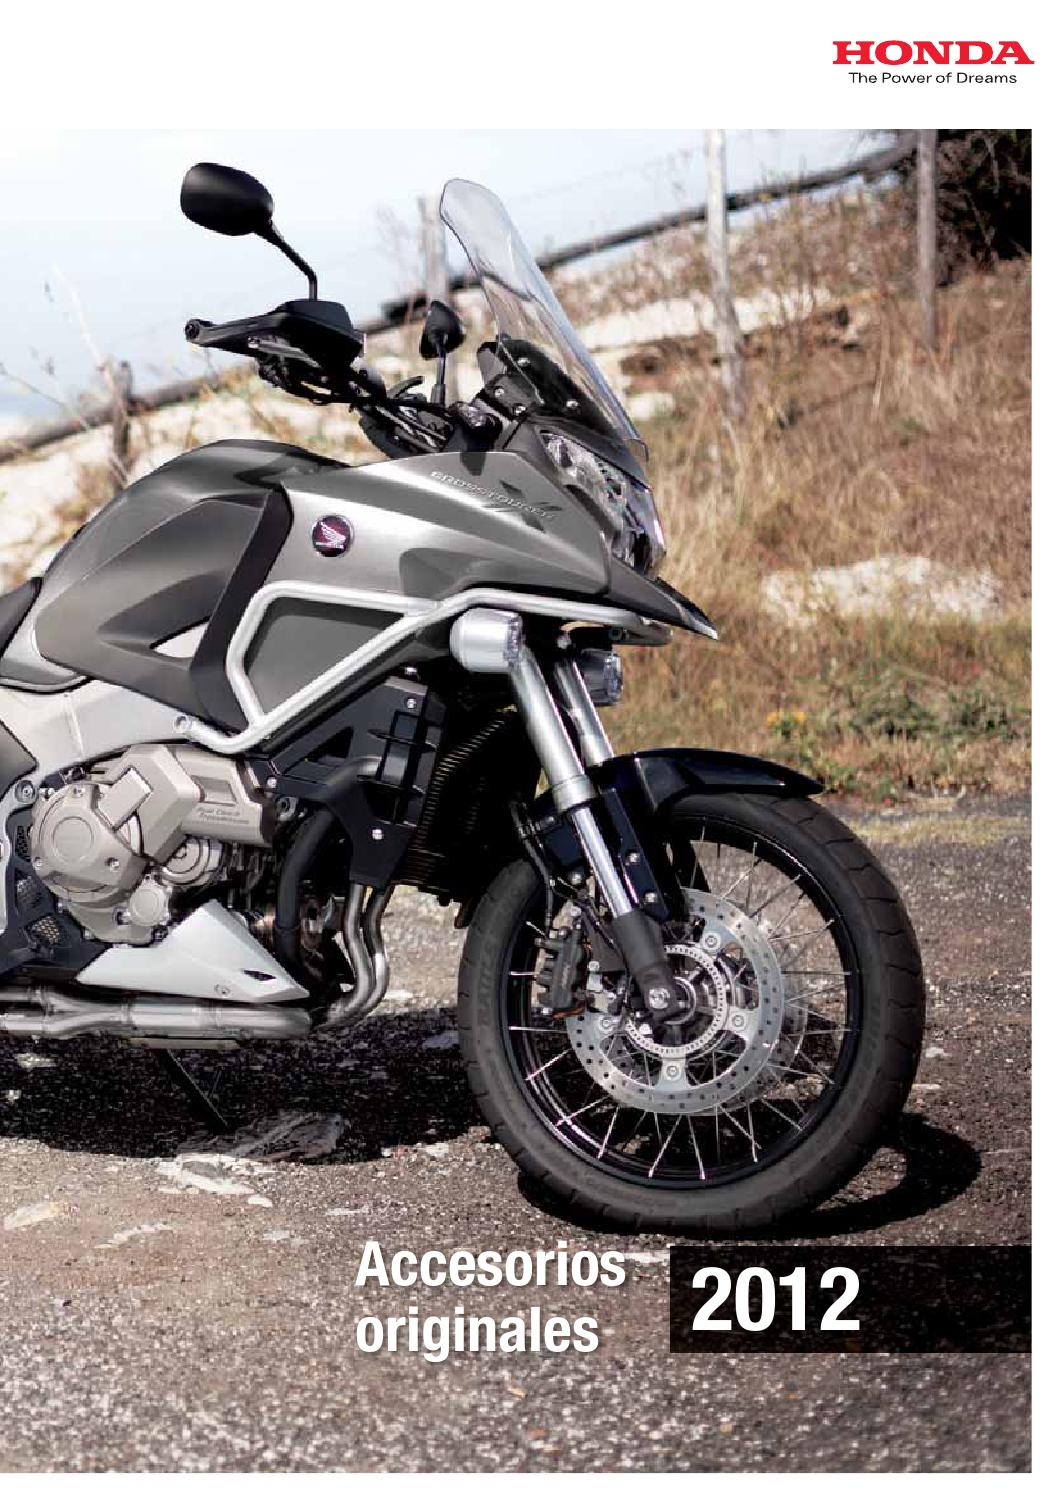 honda accesorios es by 1000ps internet gmbh issuu